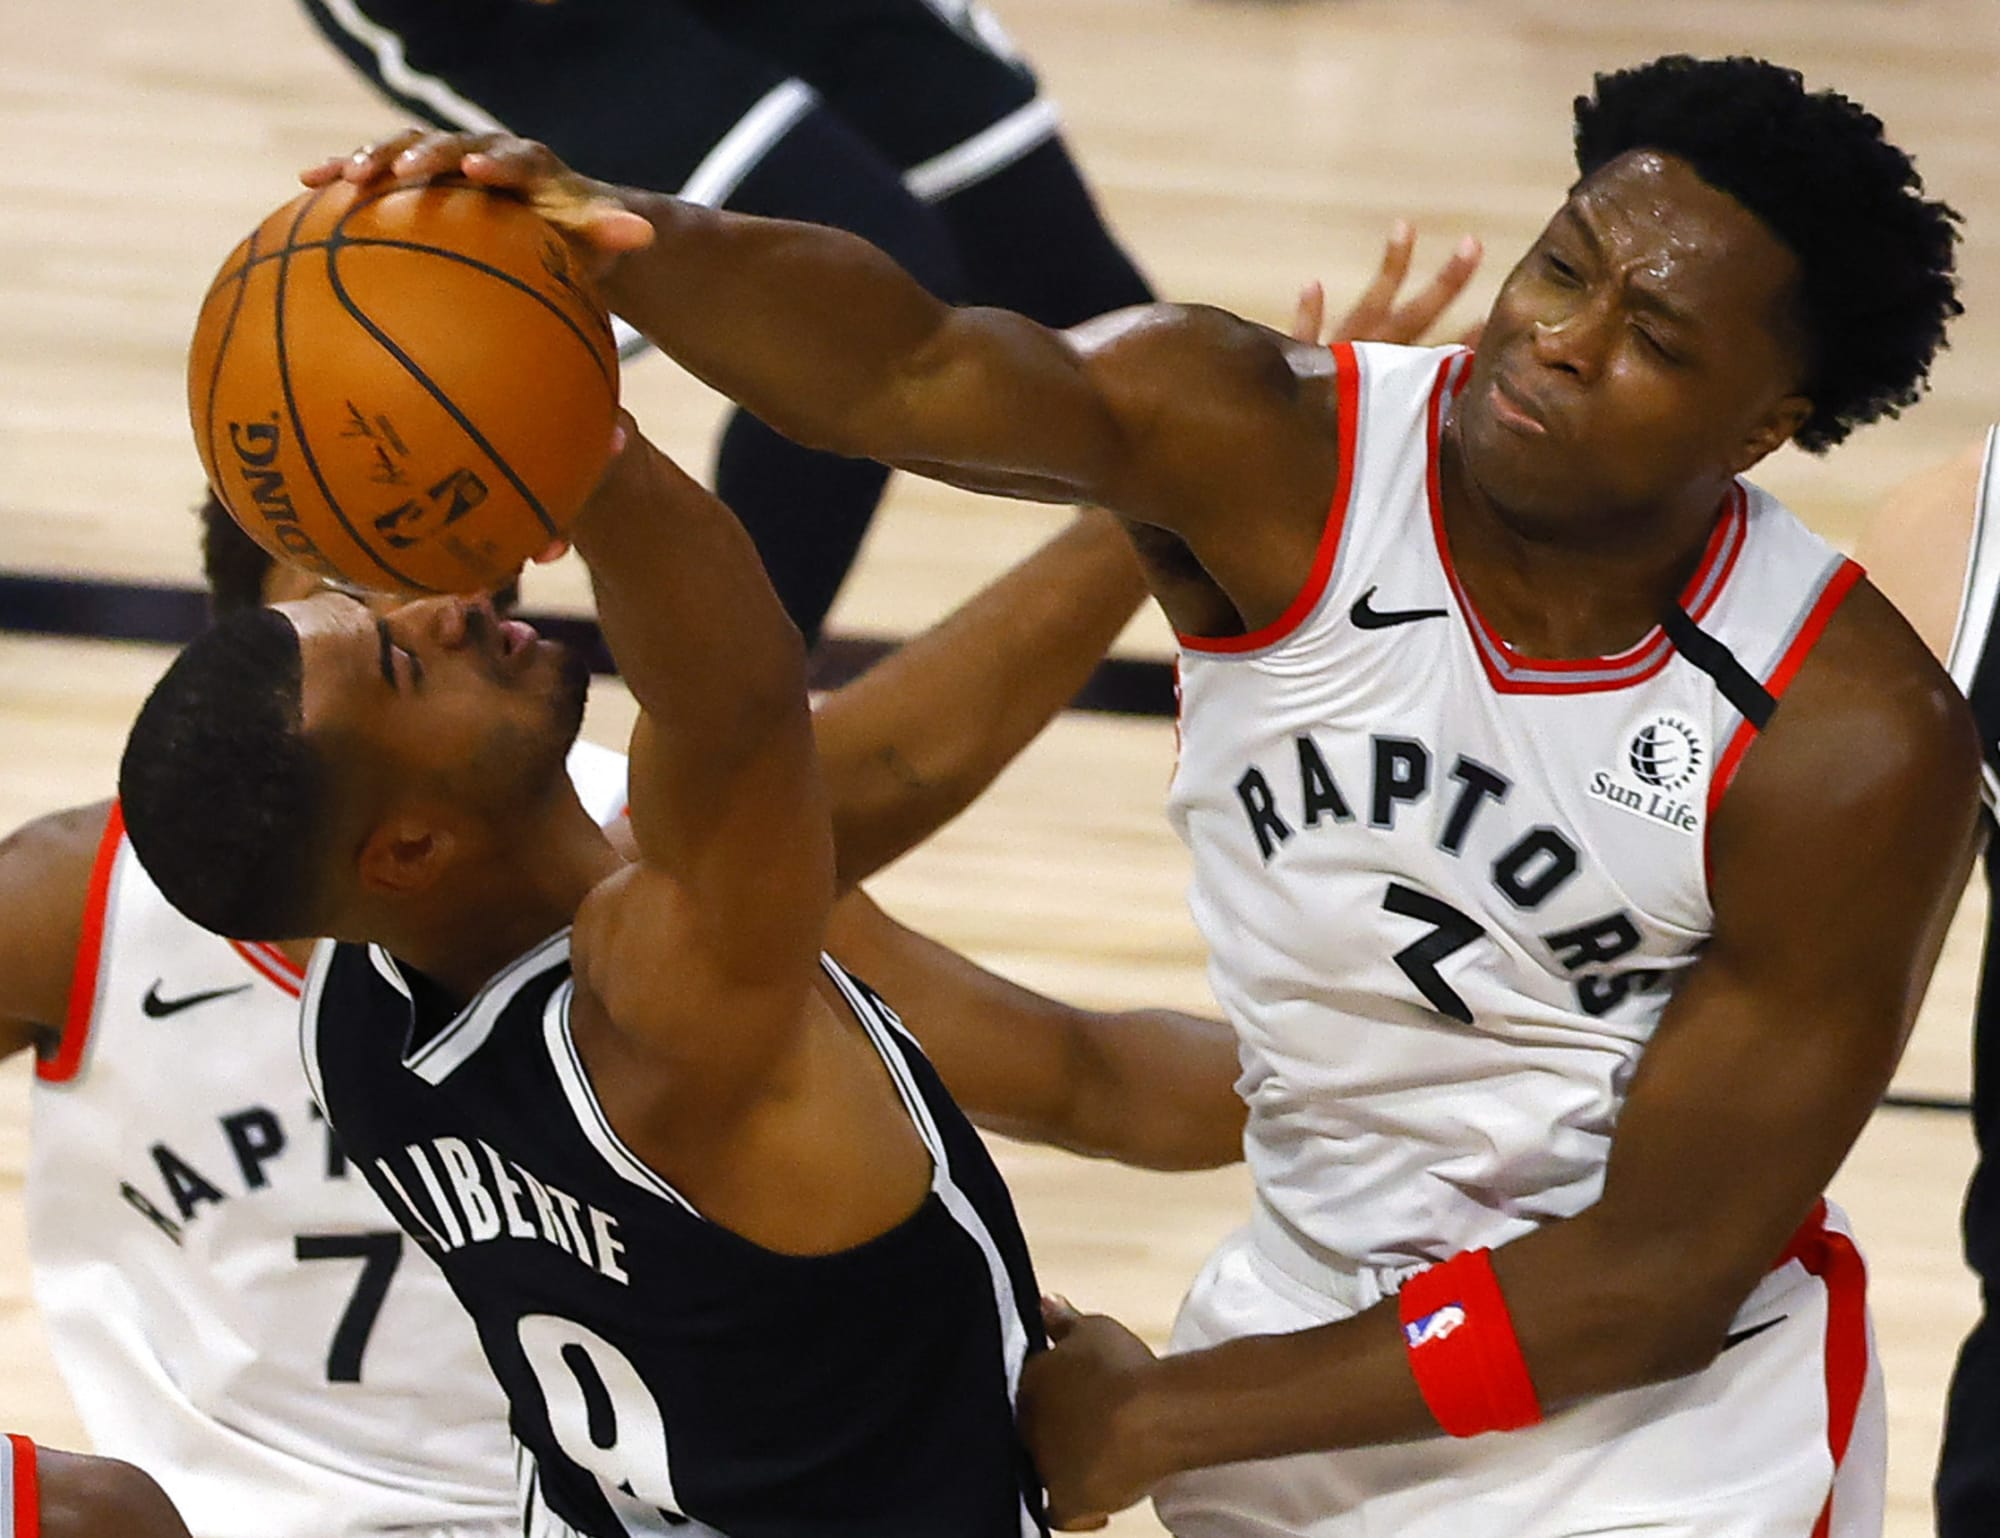 Toronto Raptors: OG Anunoby's extension is a good move for both sides